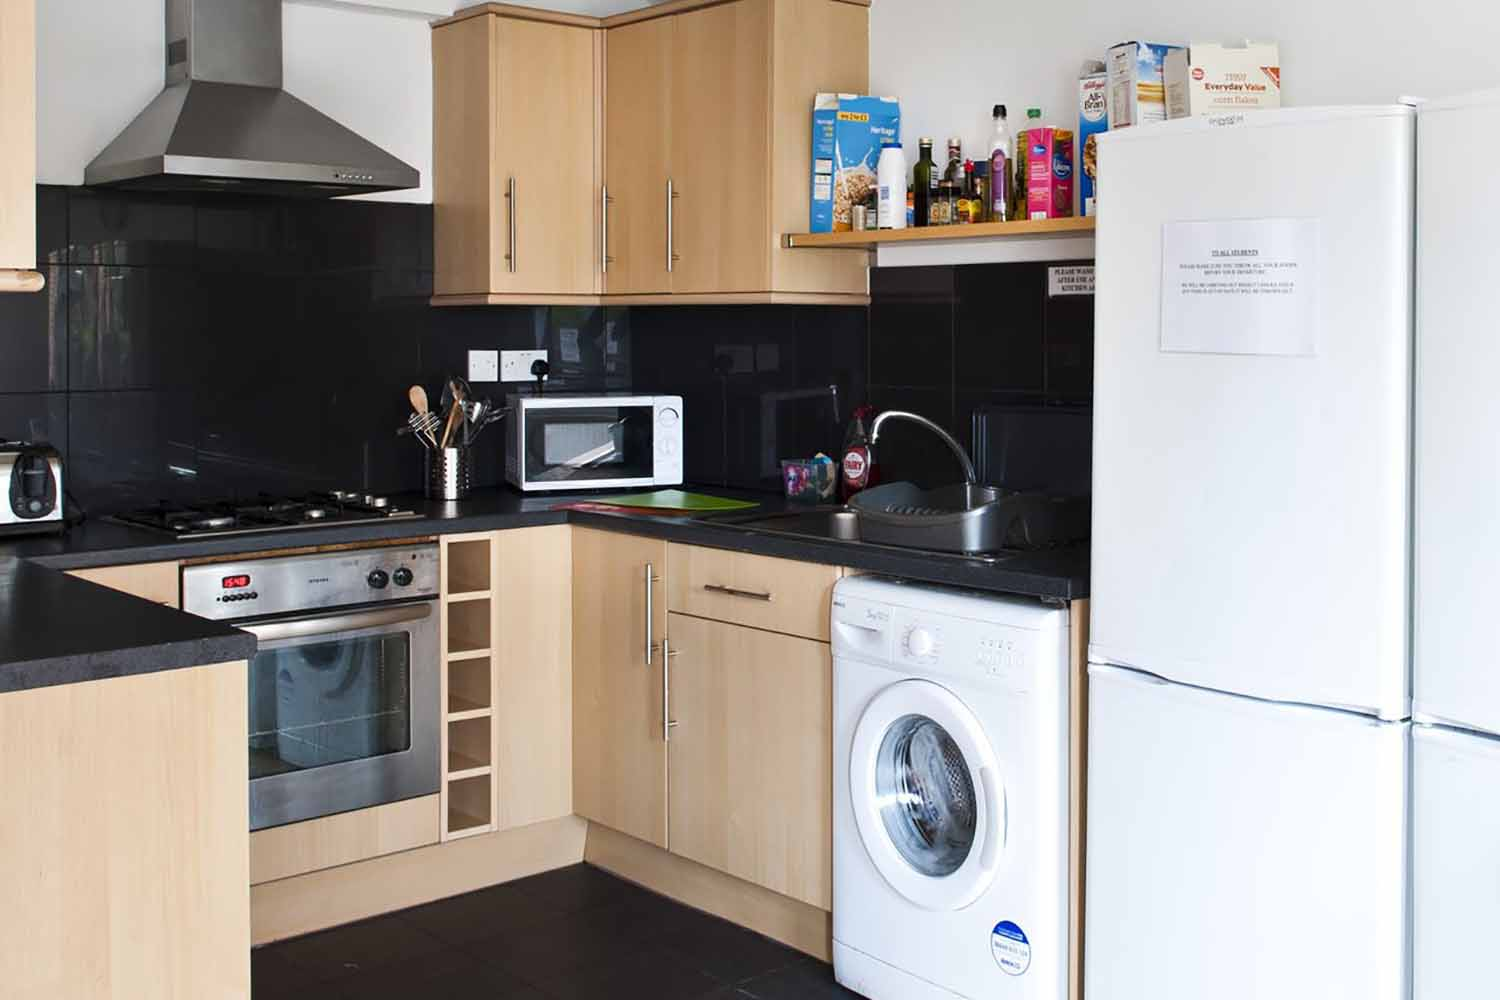 London Eltham_Acc_Shared apartments_kitchen_01